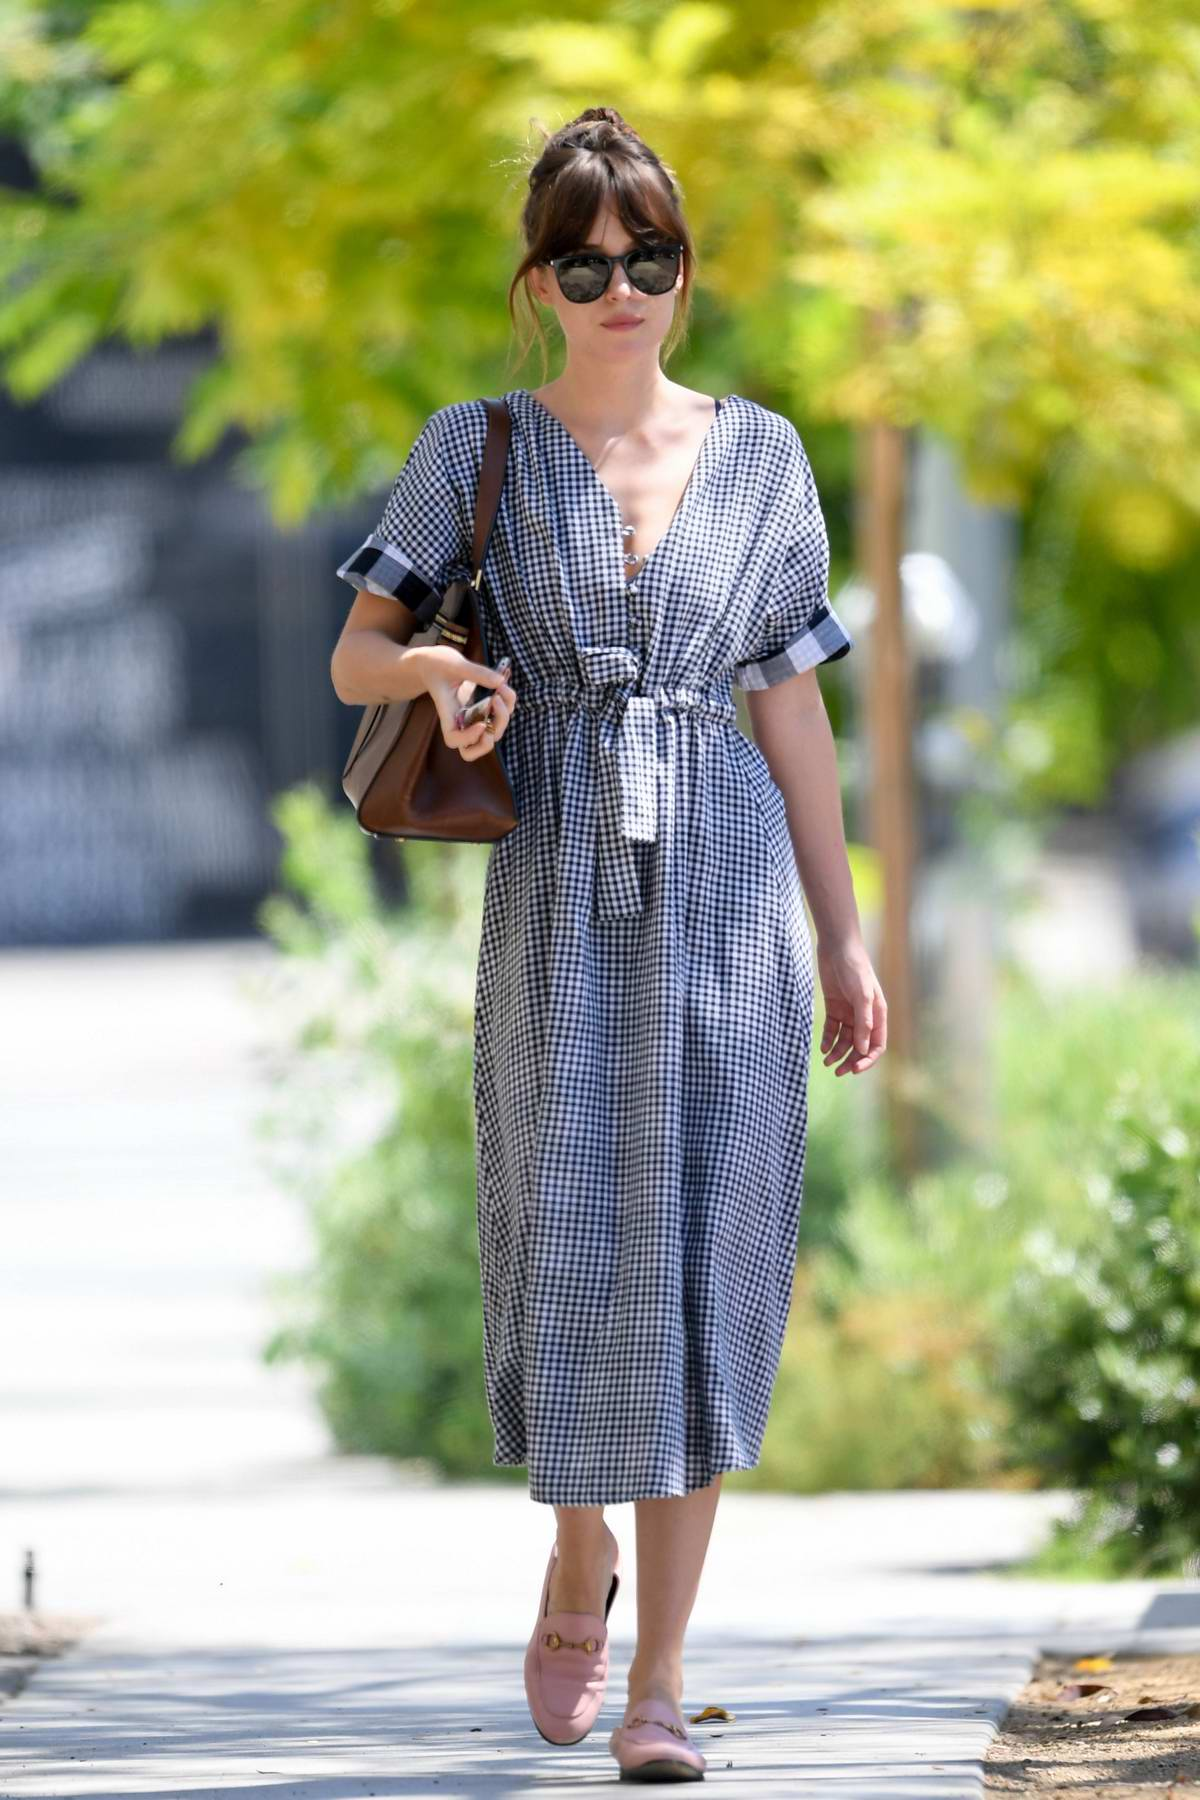 Dakota Johnson looks lovely in a gingham summer dress and pink Gucci loafers while out for a stroll in Los Angeles